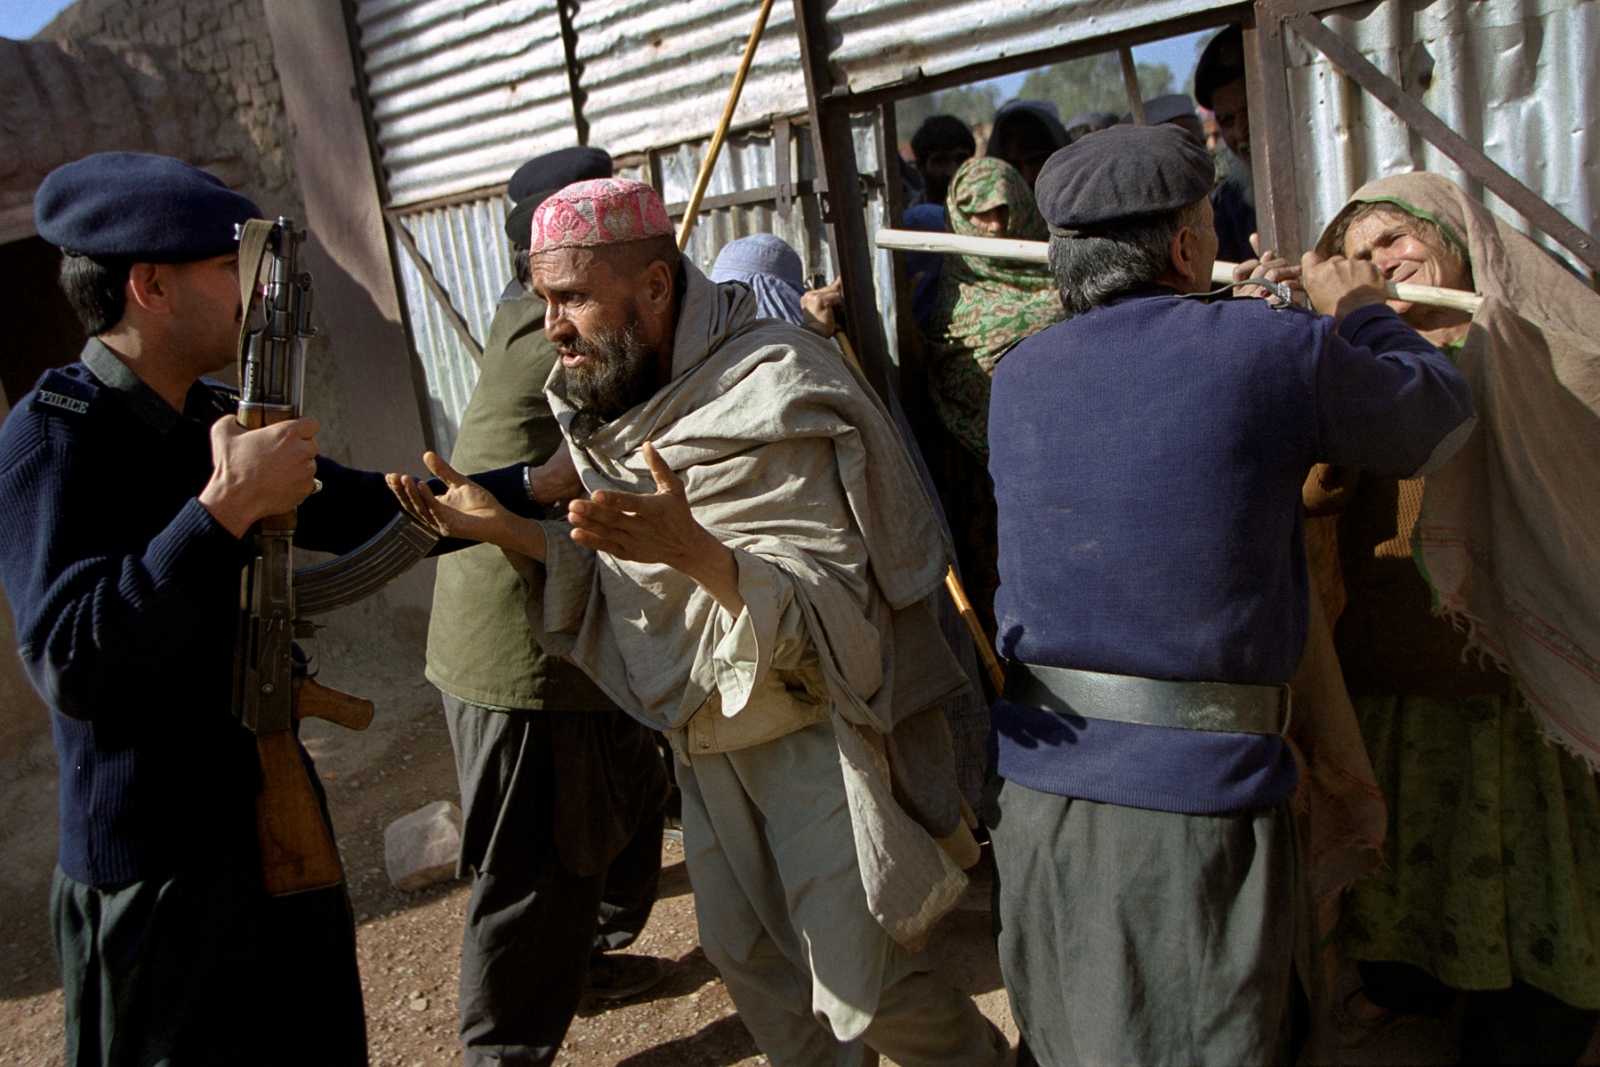 Pakistani guards at Jalozai hold back refugees who are trying to push their way into a compound holding bags of donated flour. The Afghans in the camp have little access to food.